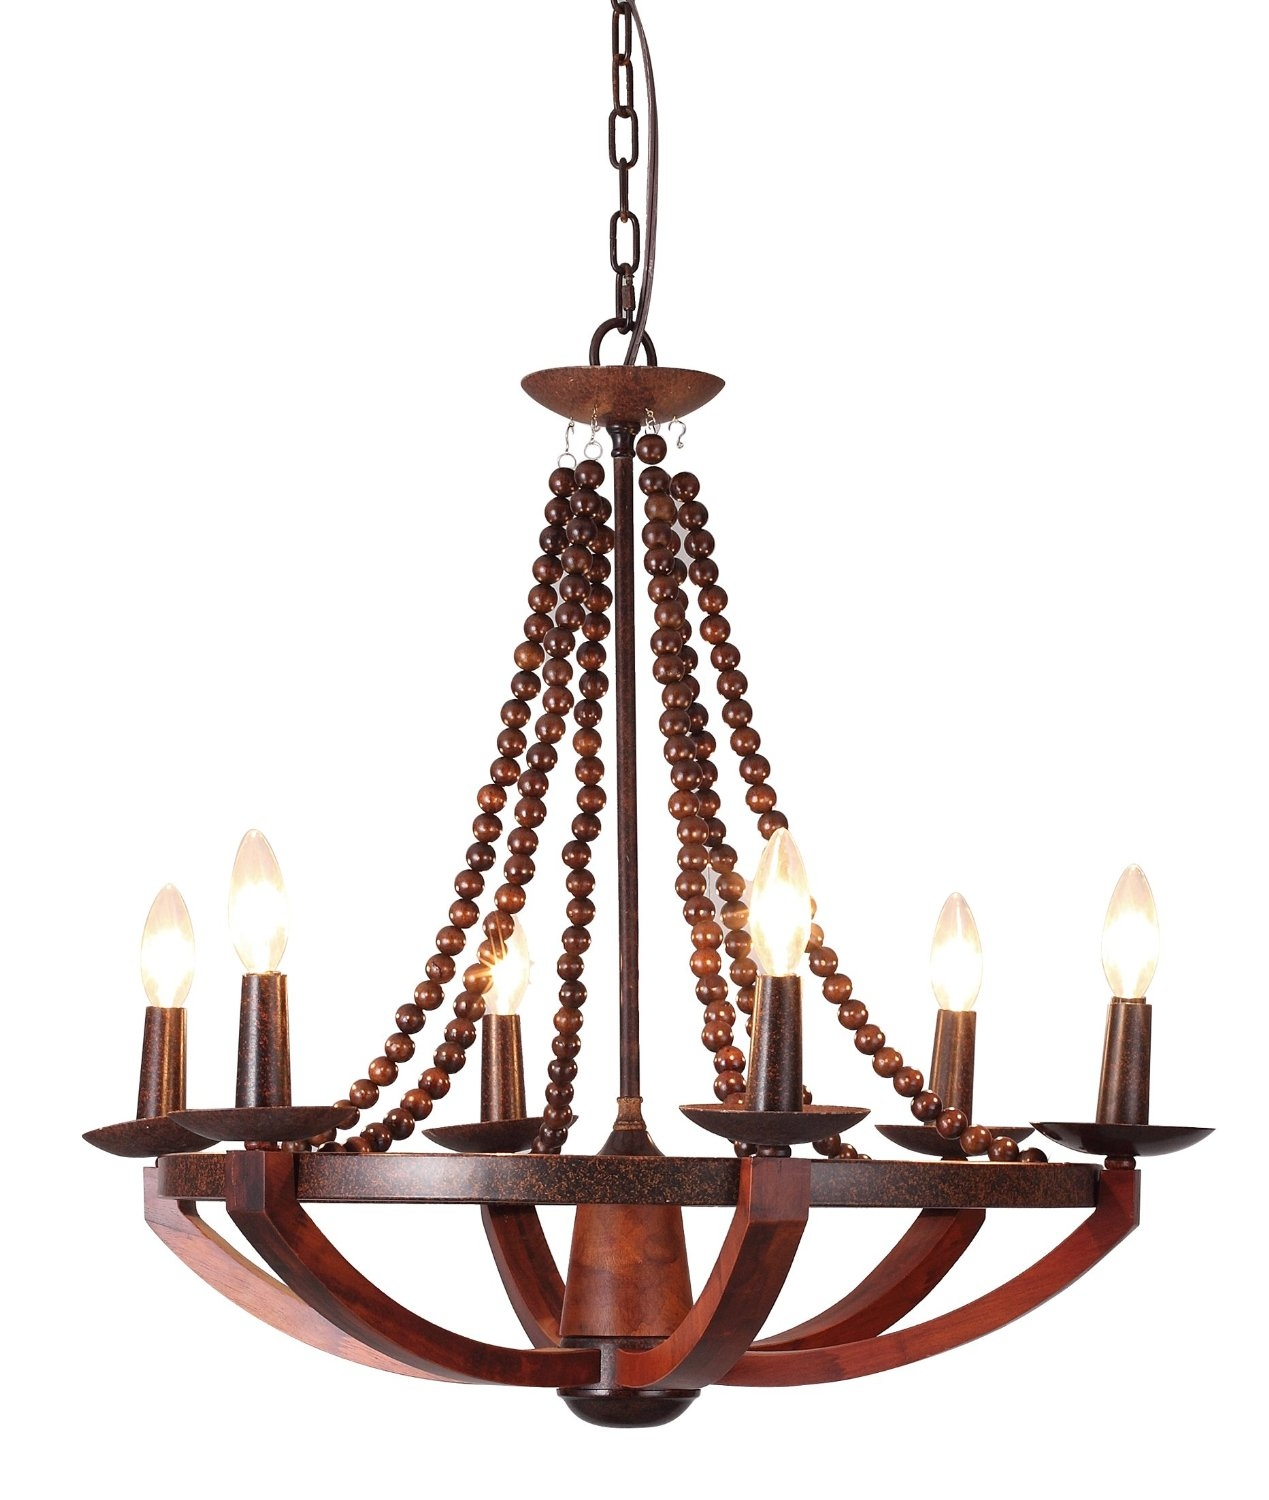 12 Best Rustic Wood And Metal Chandeliers Qosy For Wooden Chandeliers (Image 1 of 15)